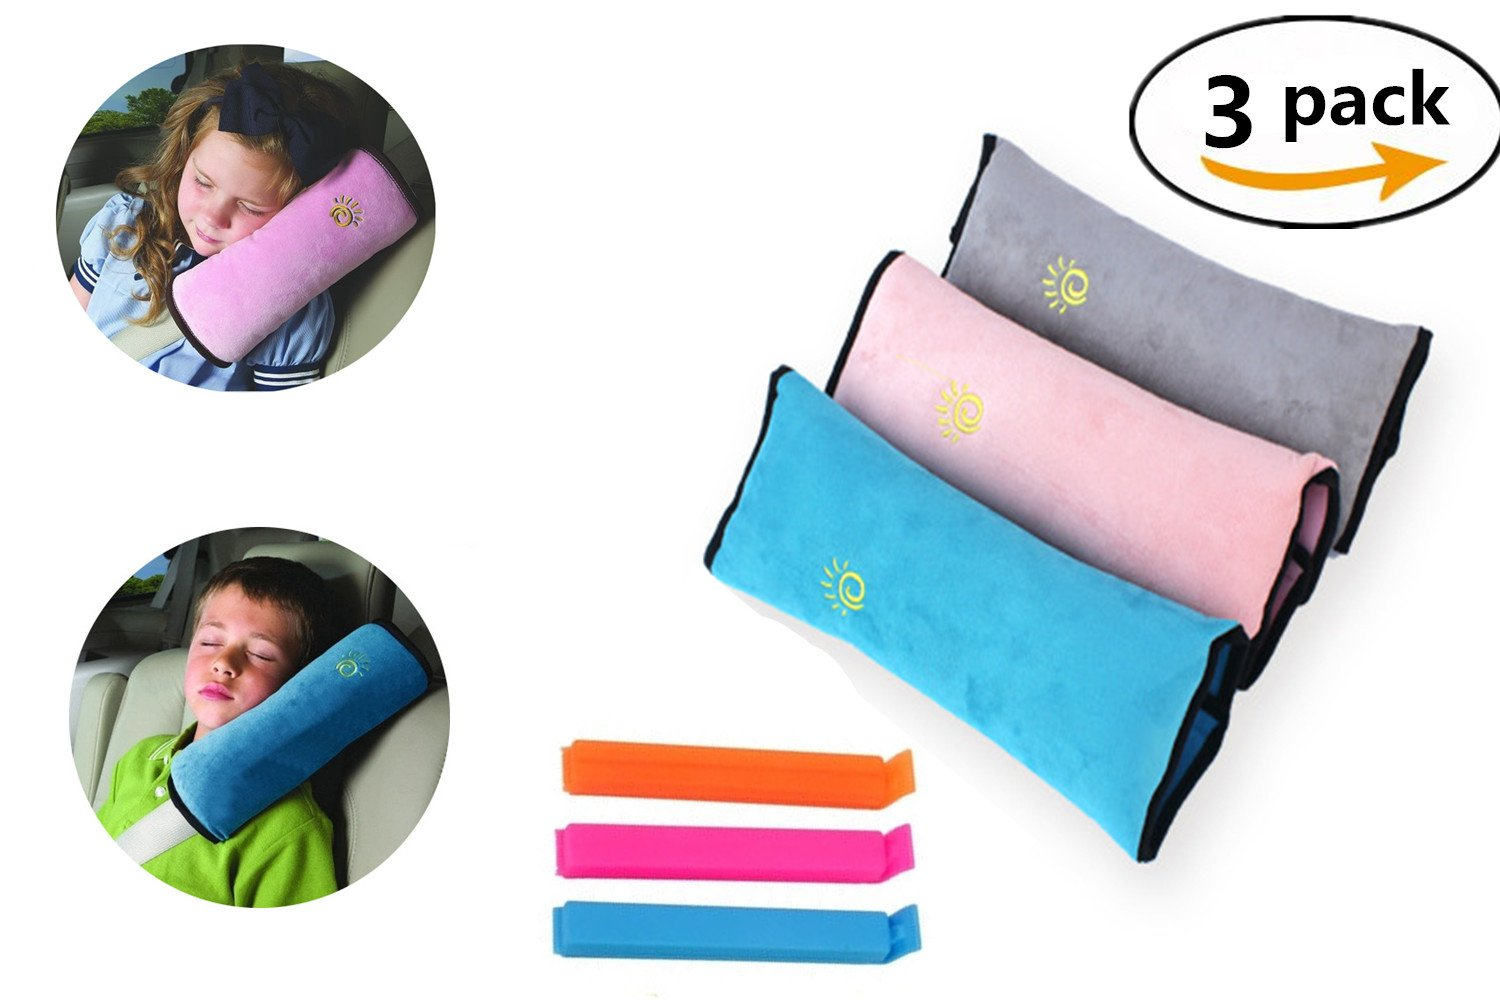 QICI Kids Seat Belt Pillow |3 Pack Seat Belt Pillow for Children|Universal Car Seatbelt Cushion Pillow| Car Travel Head Cushion, Washable Cover, Headrest Pink Gray Blue (3 Color)